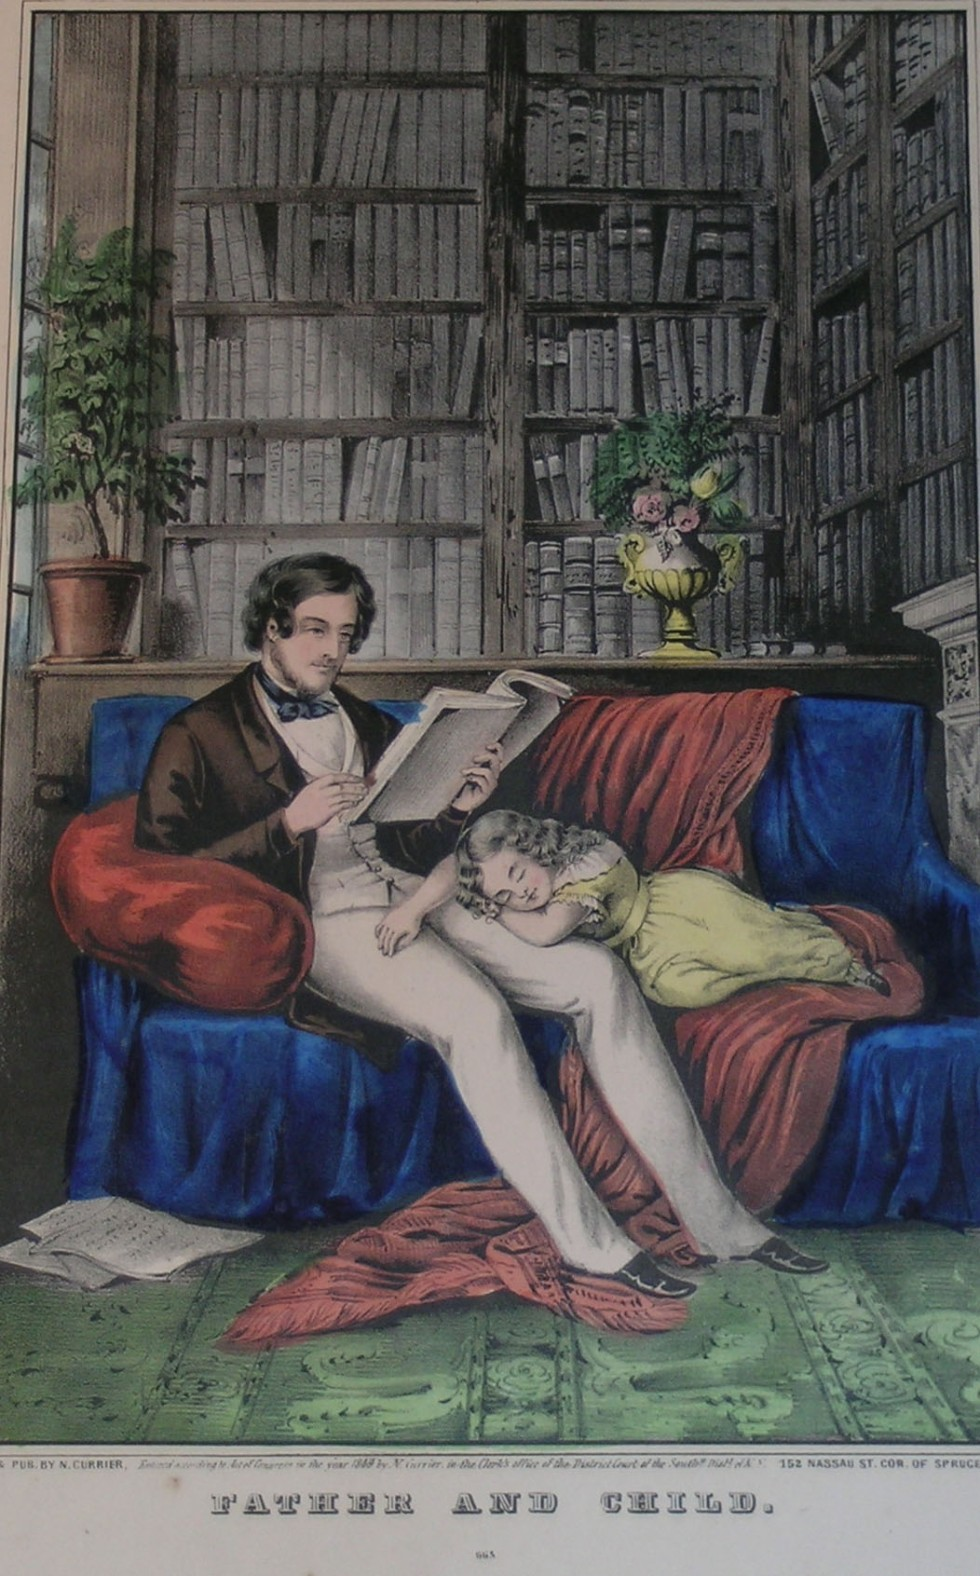 Interior of a study with father reading a book sitting on a couch and daughter fast asleep in his lap